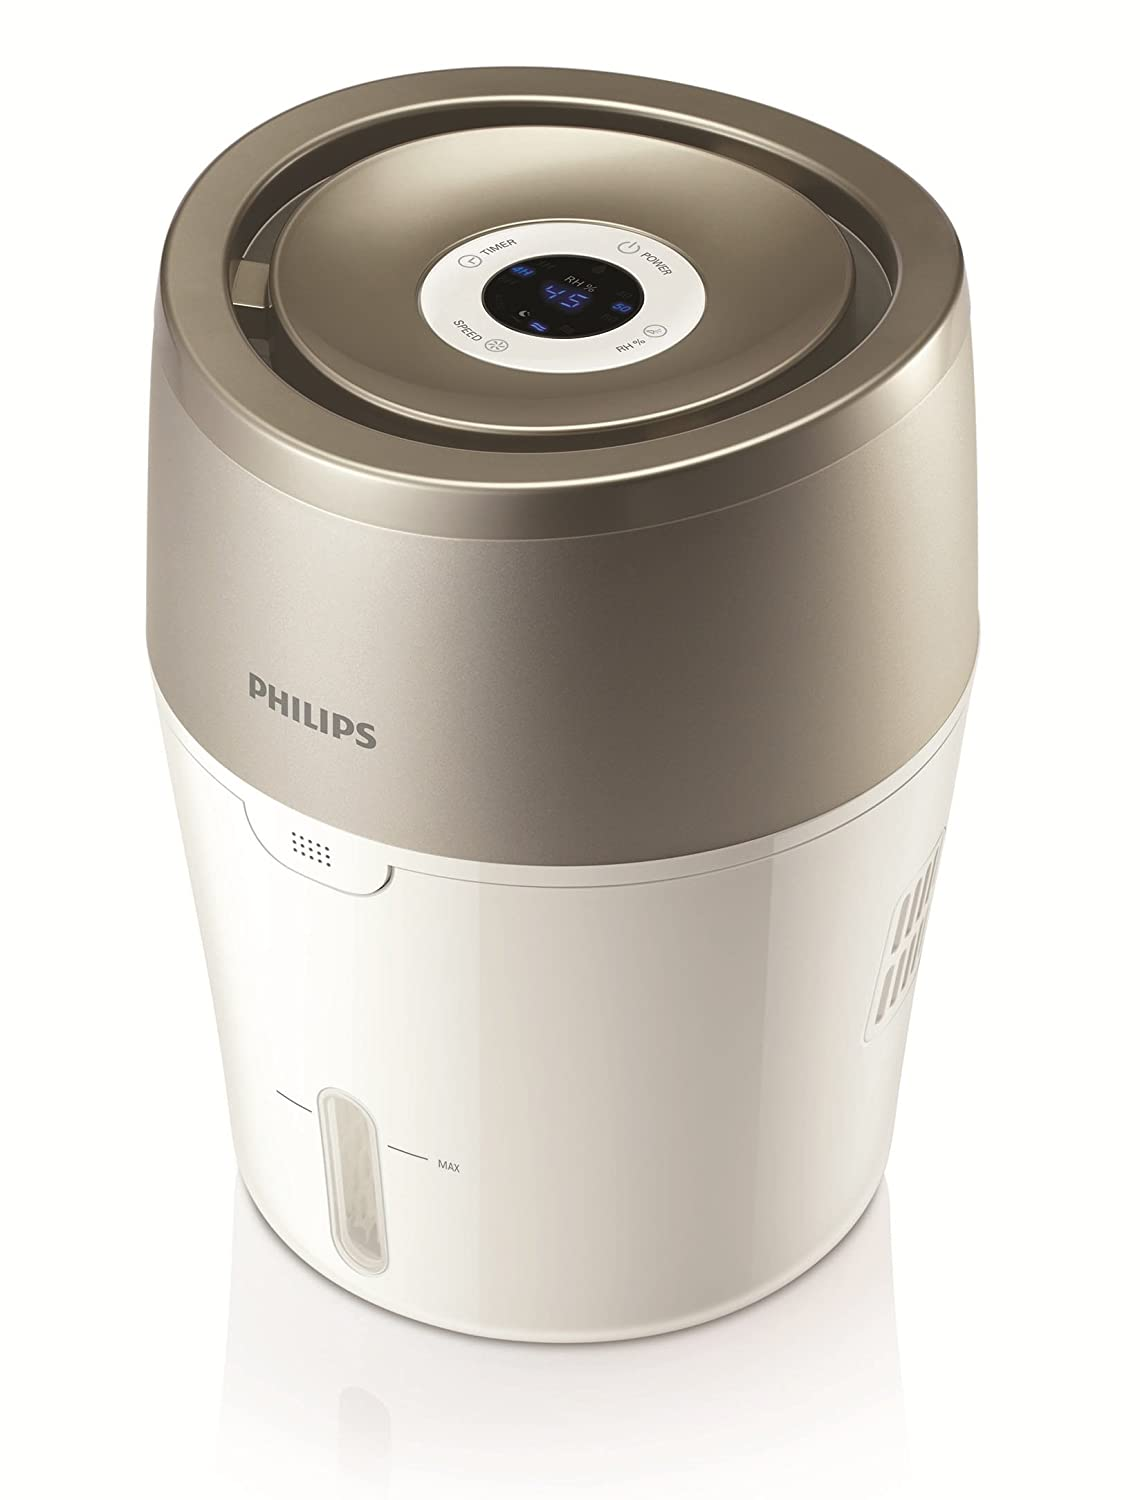 Philips HU4803/01 Humidificateur d'air avec technologie naturelle NanoCloud philips air philips airpurifyer philips airpurifier philips air purifier